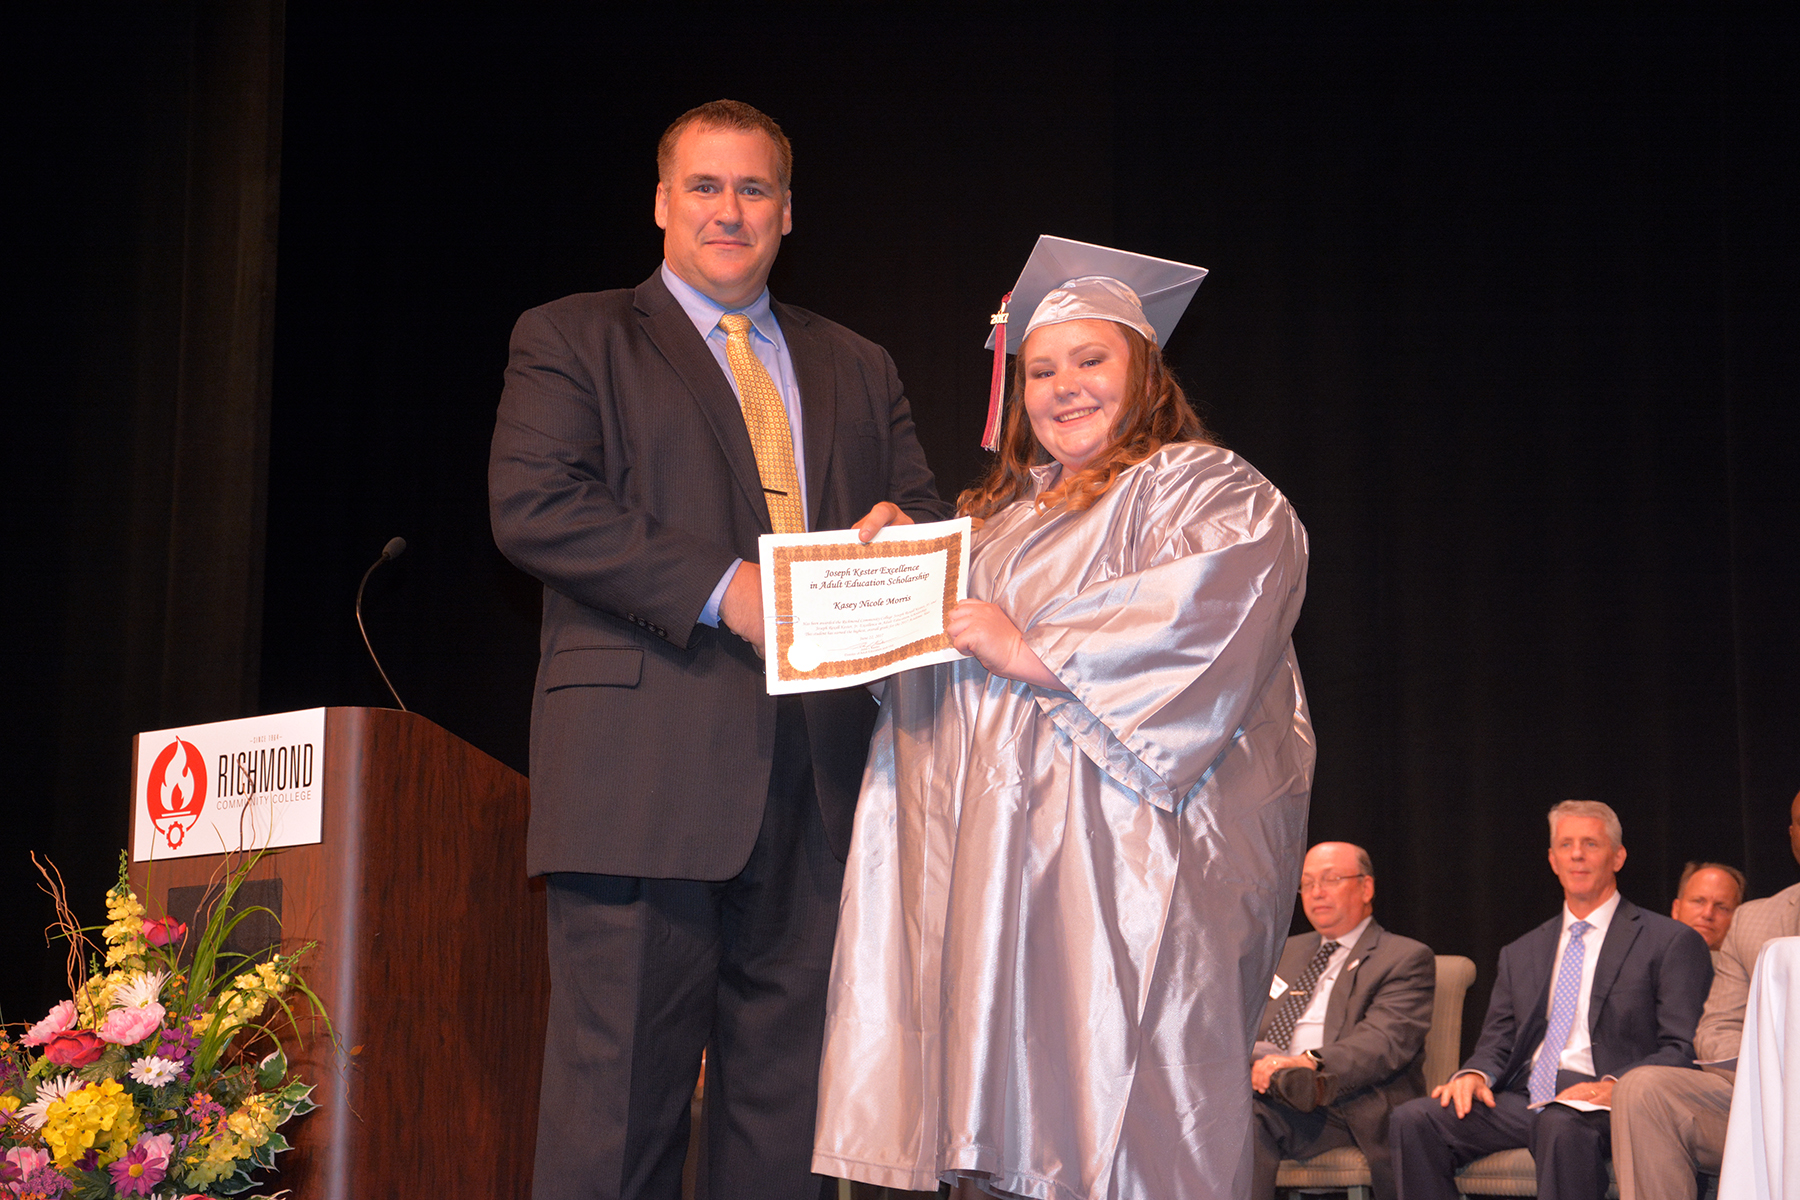 Pictured is Adult High School graduate Kasey Morris receiving the Joseph R. Kester Excellence in Education Scholarship from Richmond Community College Director of Adult Education John Kester.